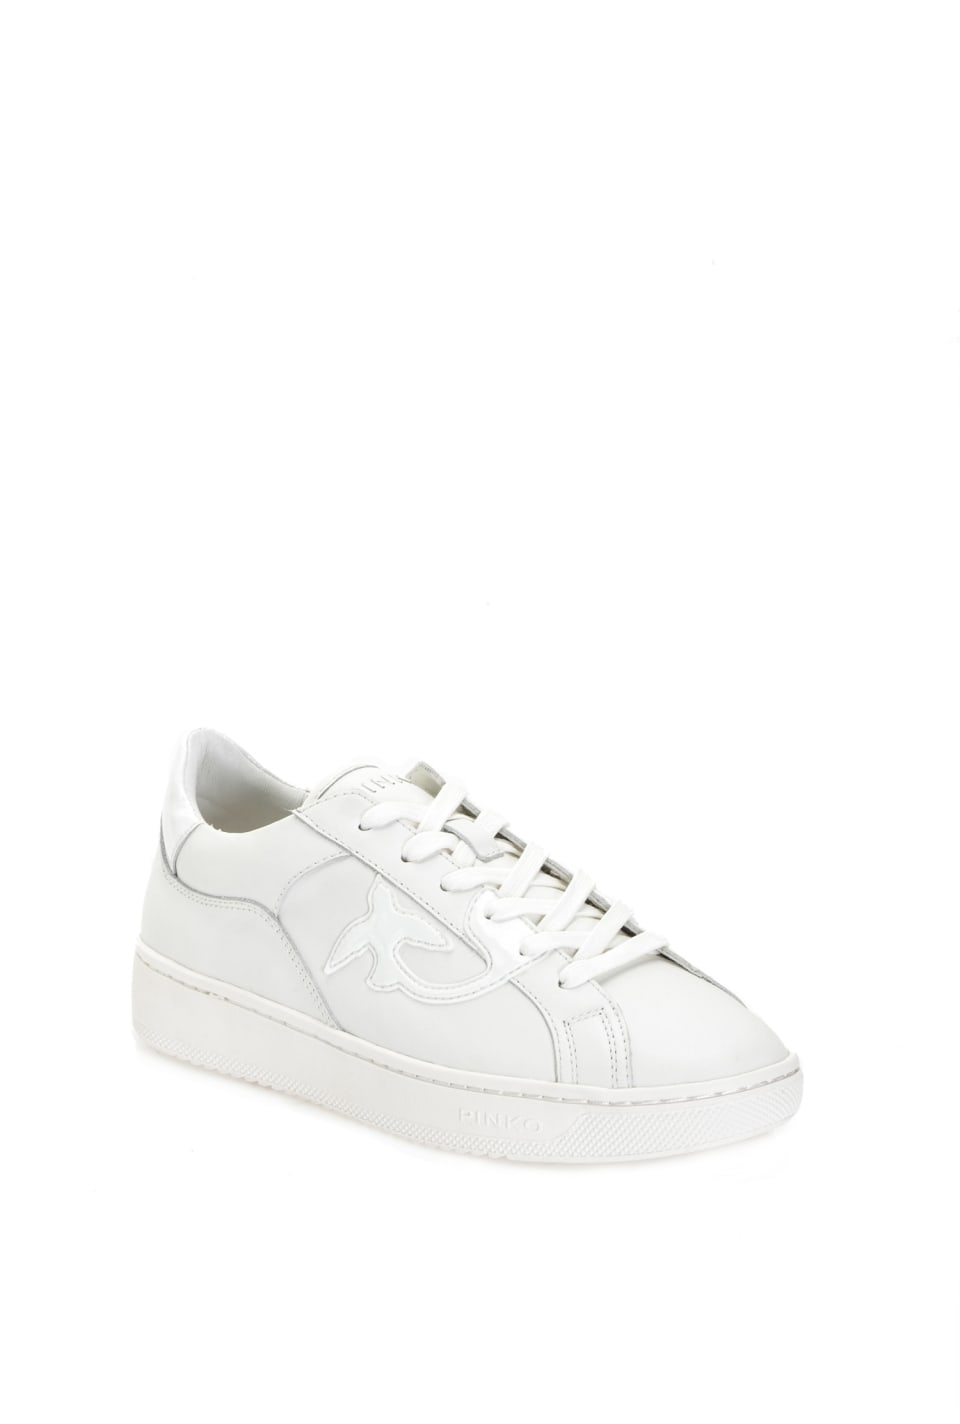 Flat sneakers in leather - Pinko